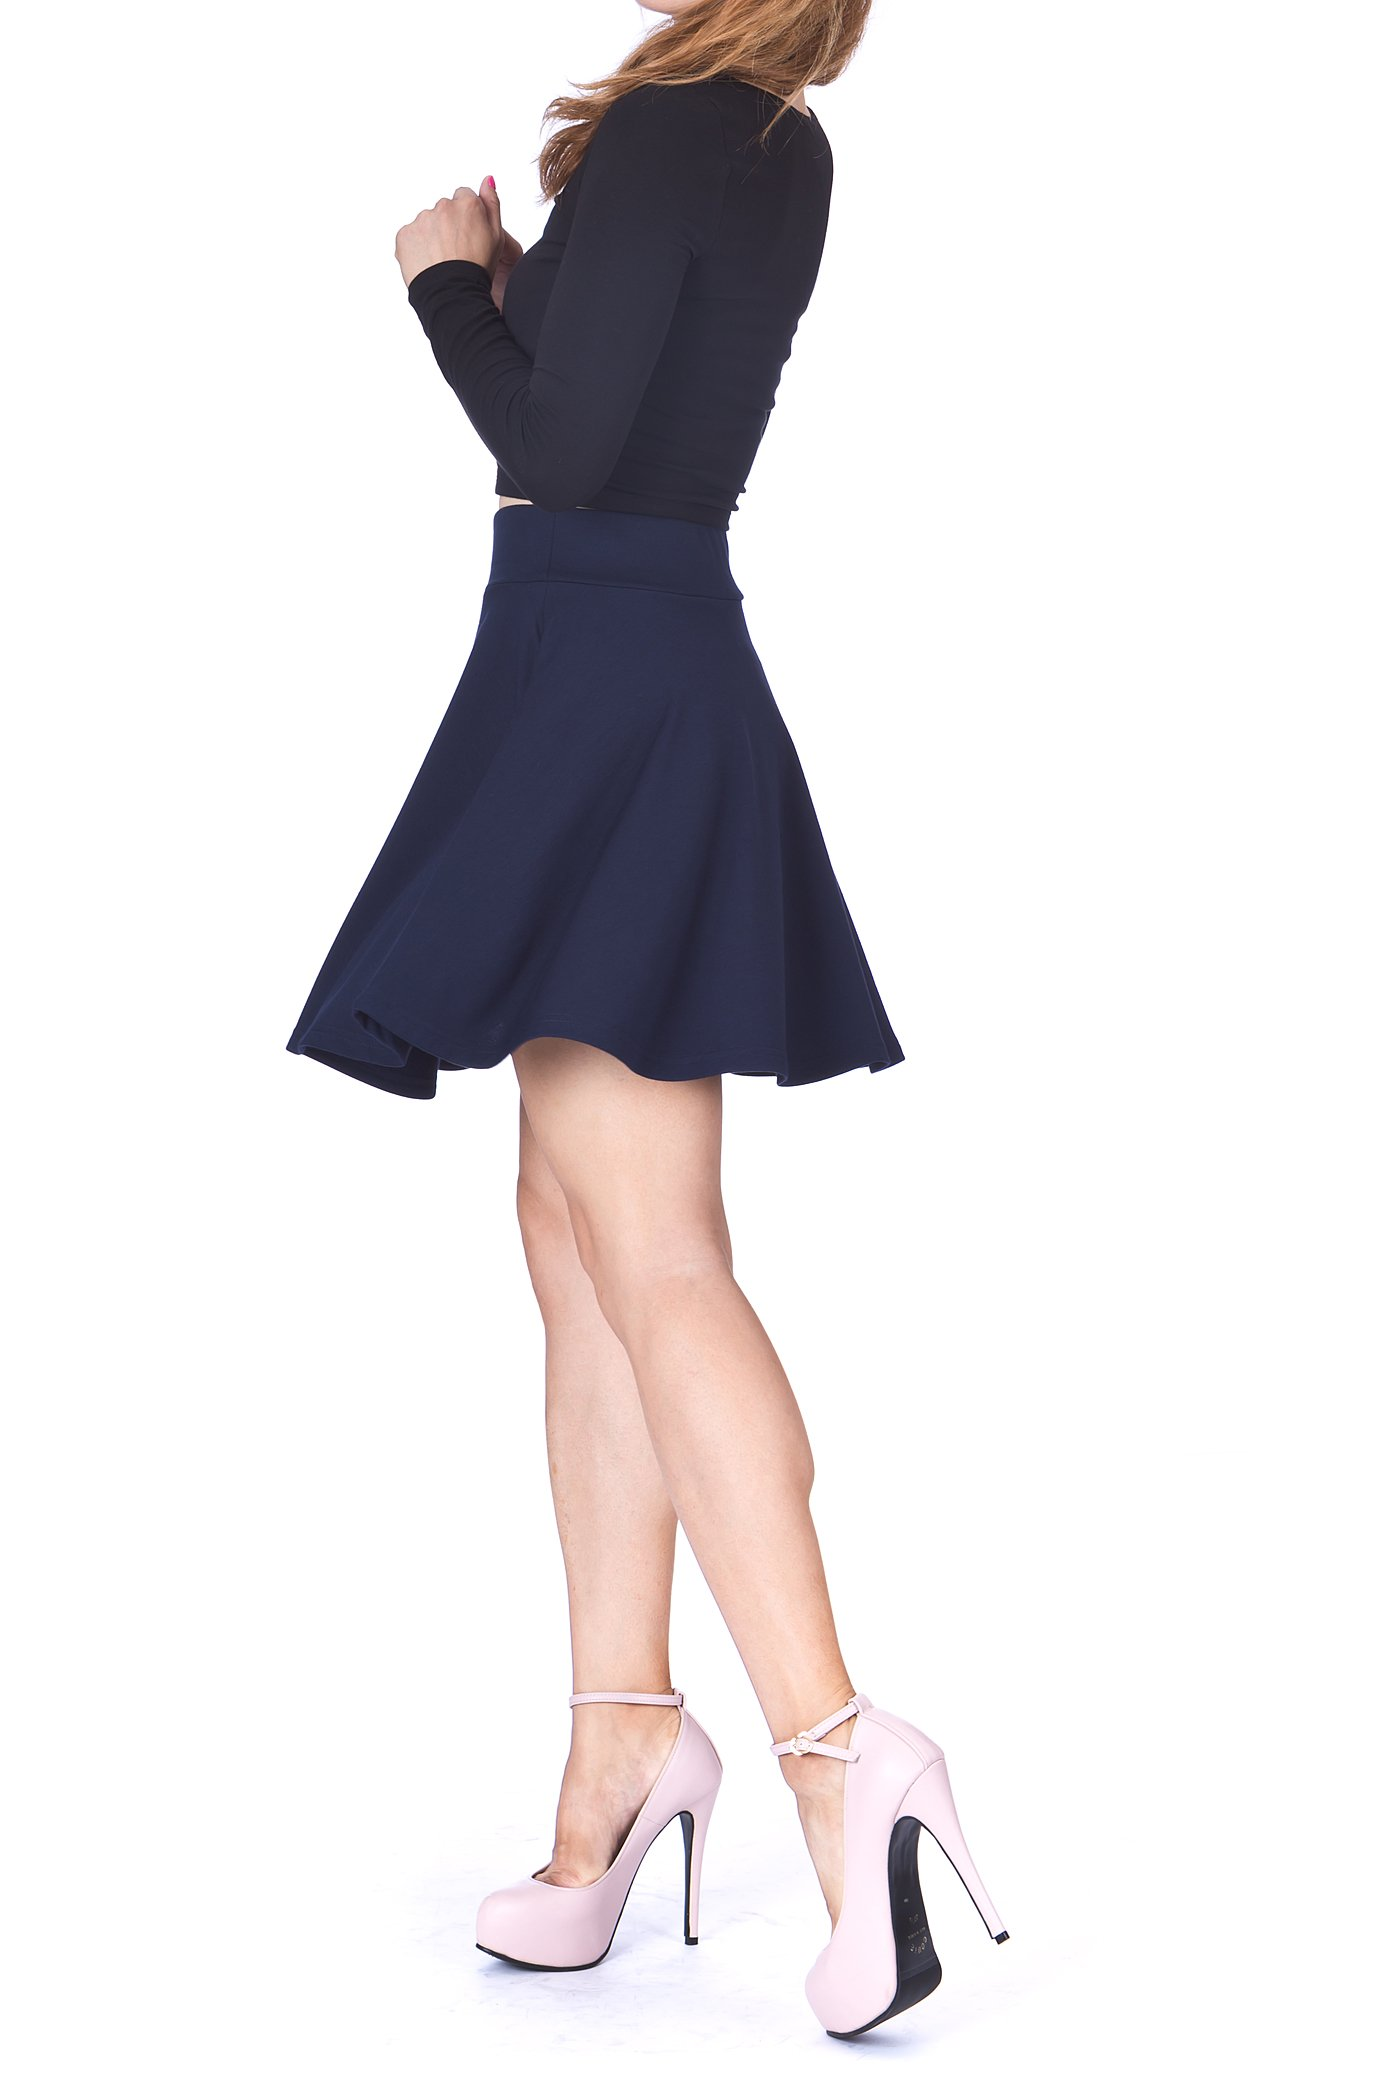 Swing Swing Wide High Waist A line Full Flared Swing Skater Short Mini Skirt Navy 1